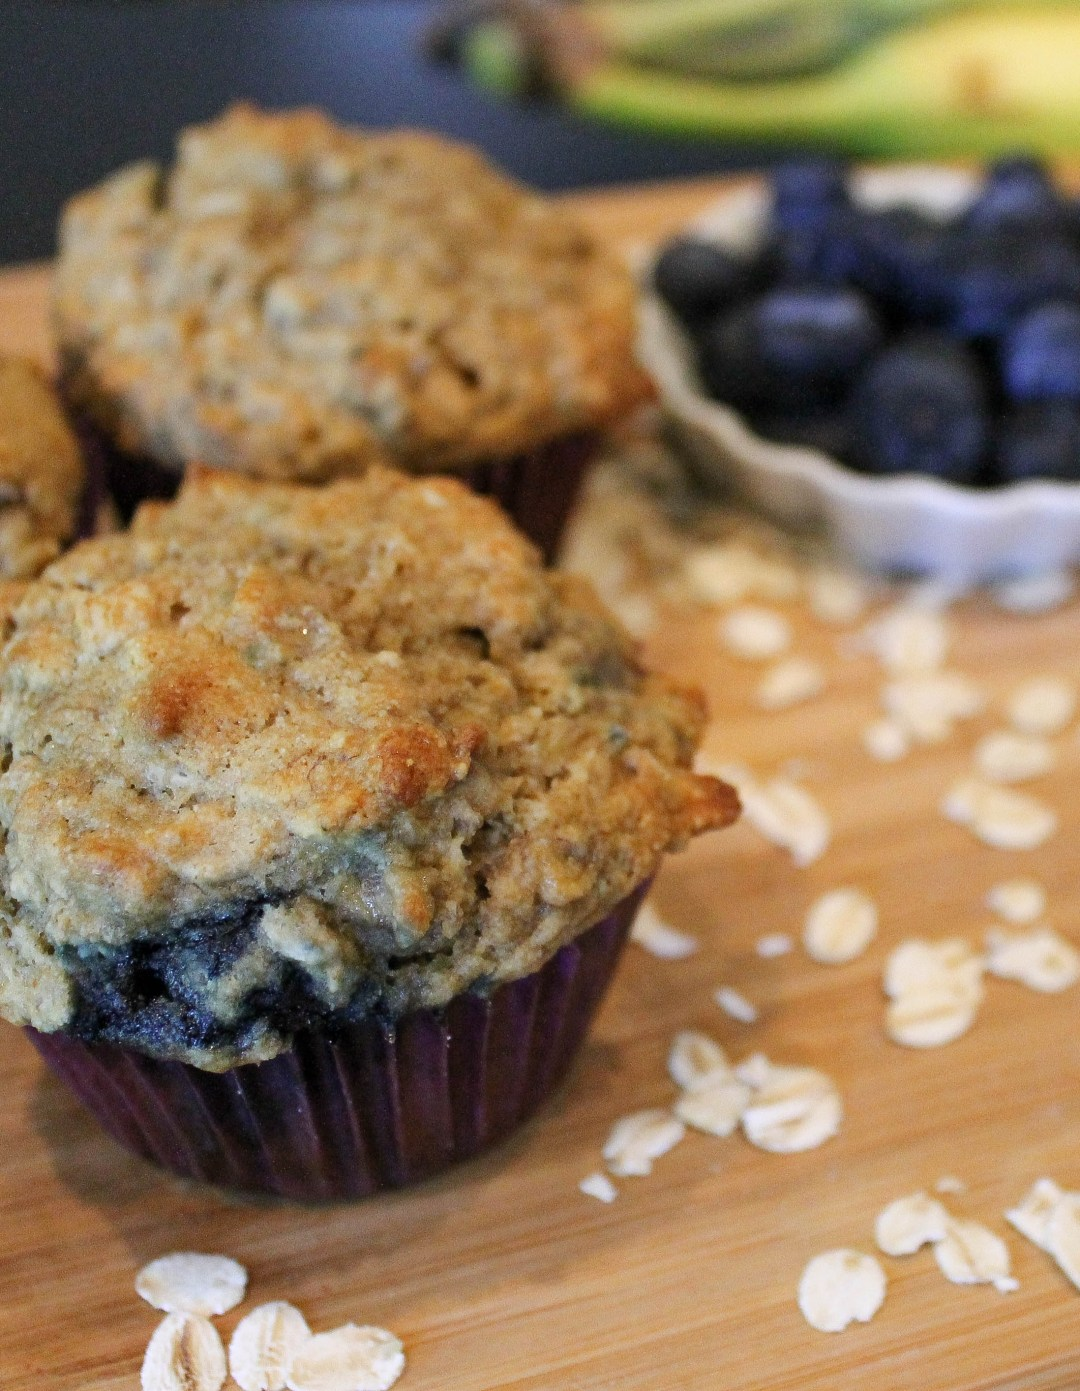 Banana Blueberry Oatmeal Muffins - great for breakfast or a snack